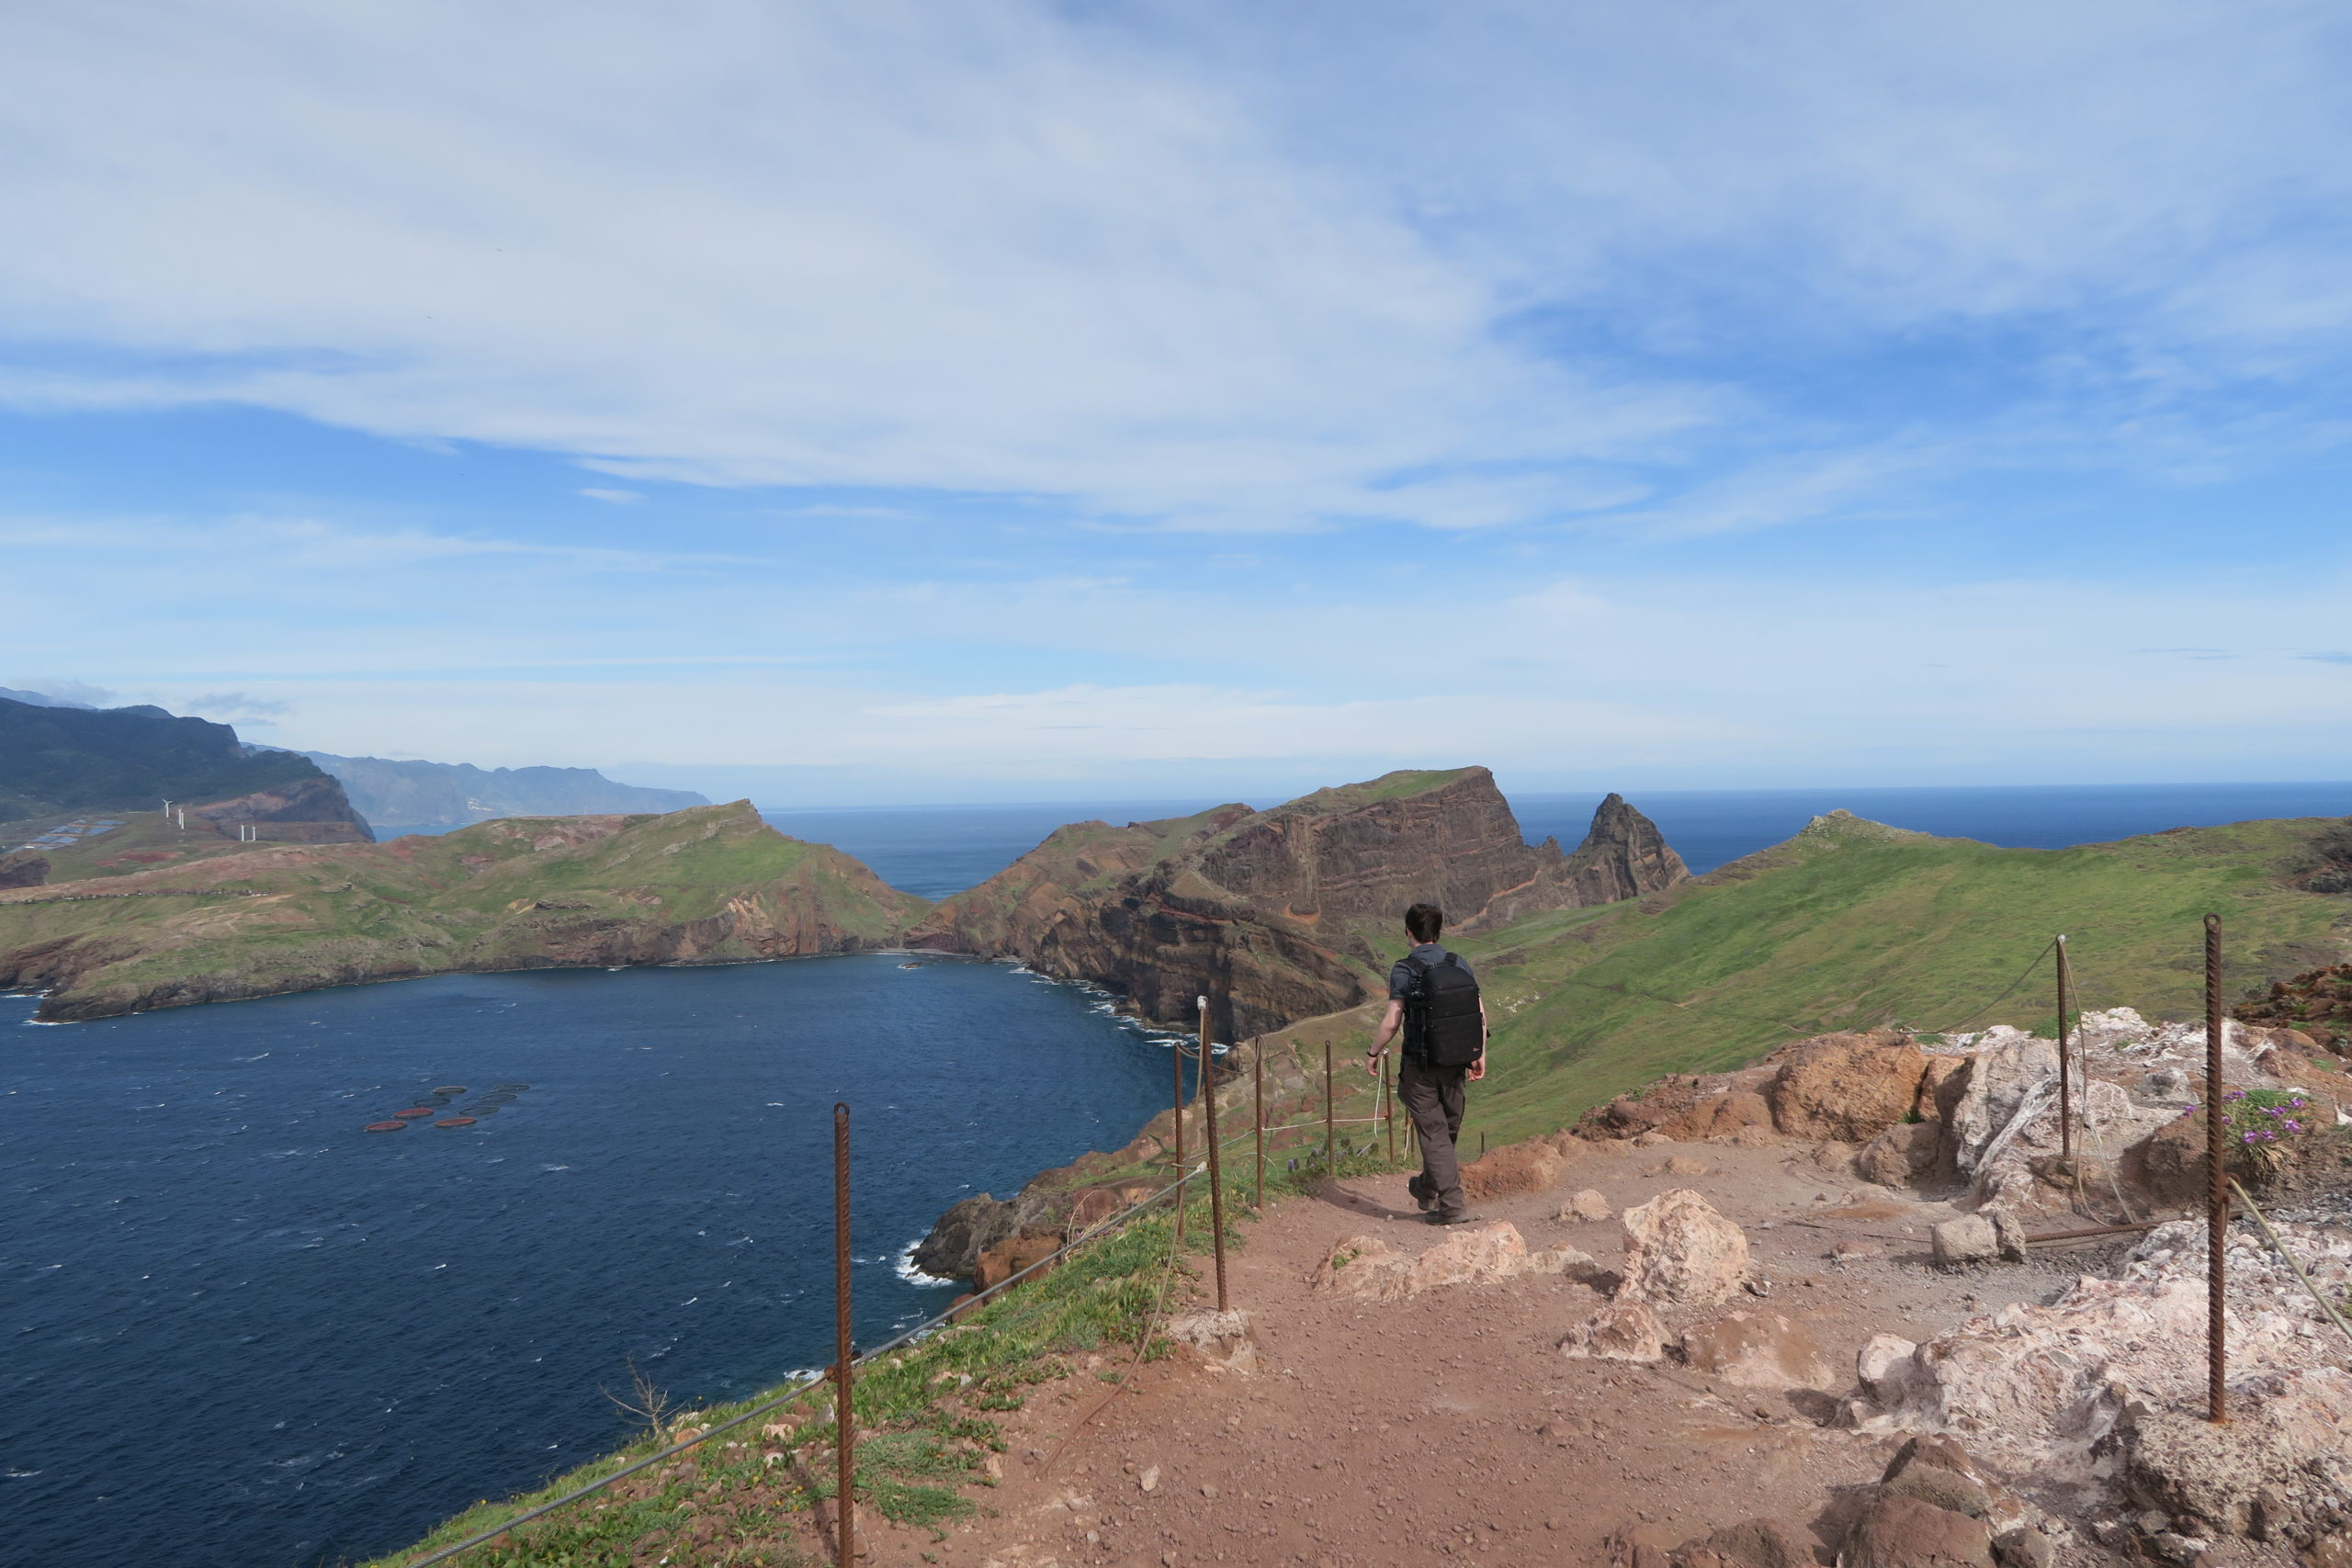 Hiking in Madeira, Portugal